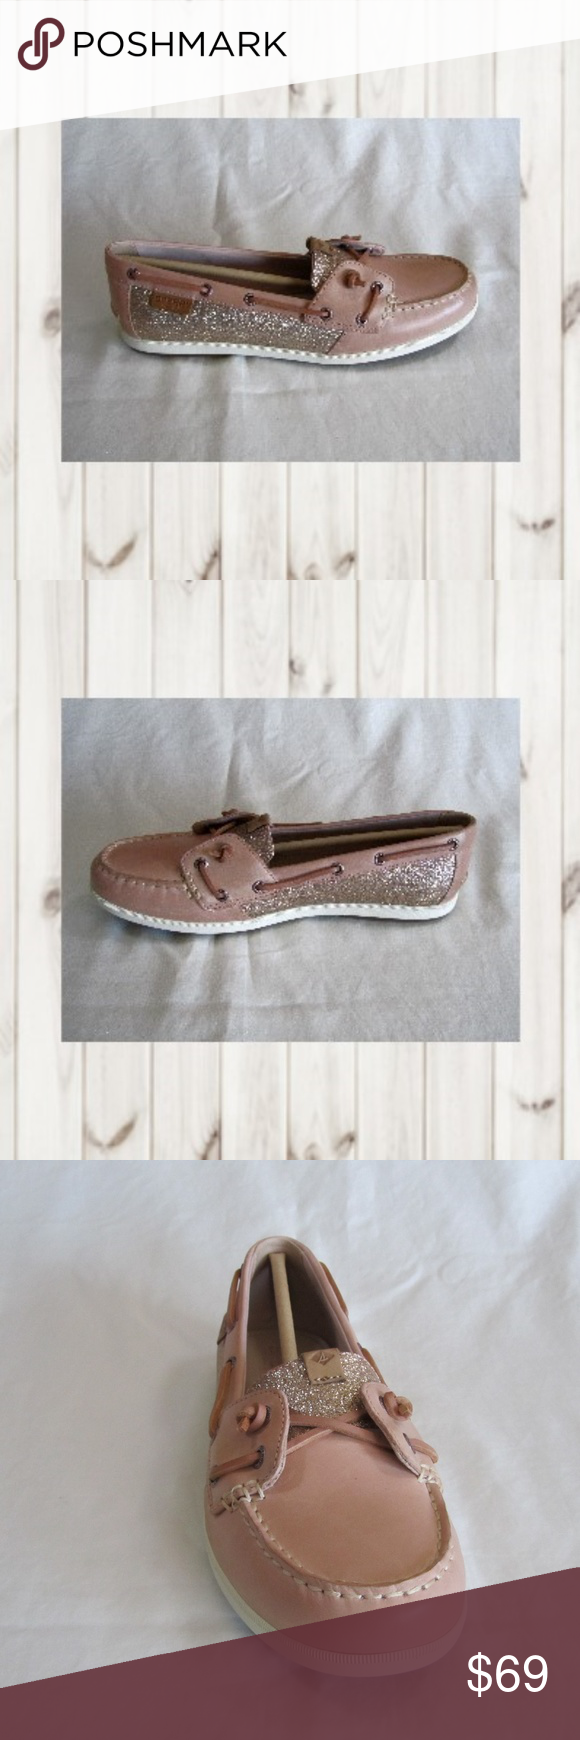 Sperry Top Sider, Coil Ivy, Rose Sparkle Sperry Top Sider, Coil Ivy, Sparkle, Women's Size 9M, Rose, Boat Shoe. Leather lace - padded insole. NWB.  (CL-PM,EB) Sperry Shoes Flats & Loafers